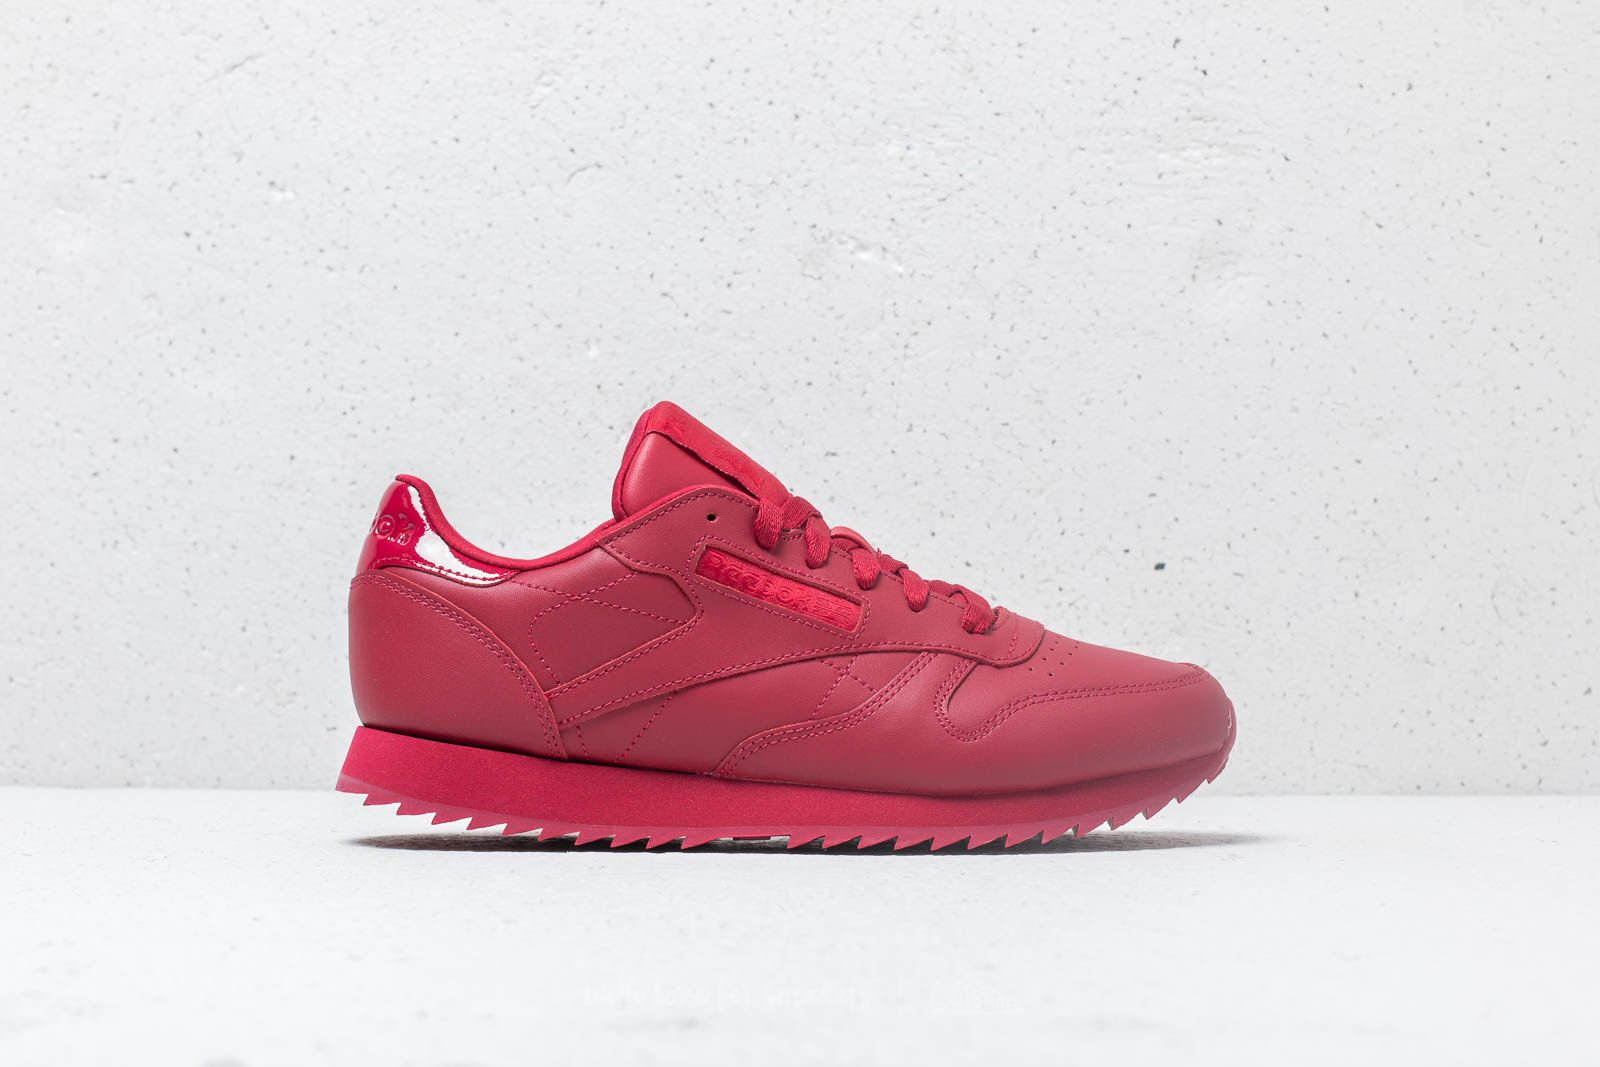 aef8022e130 Reebok CL Leather Ripple W Cranberry Red at a great price £78 buy at  Footshop